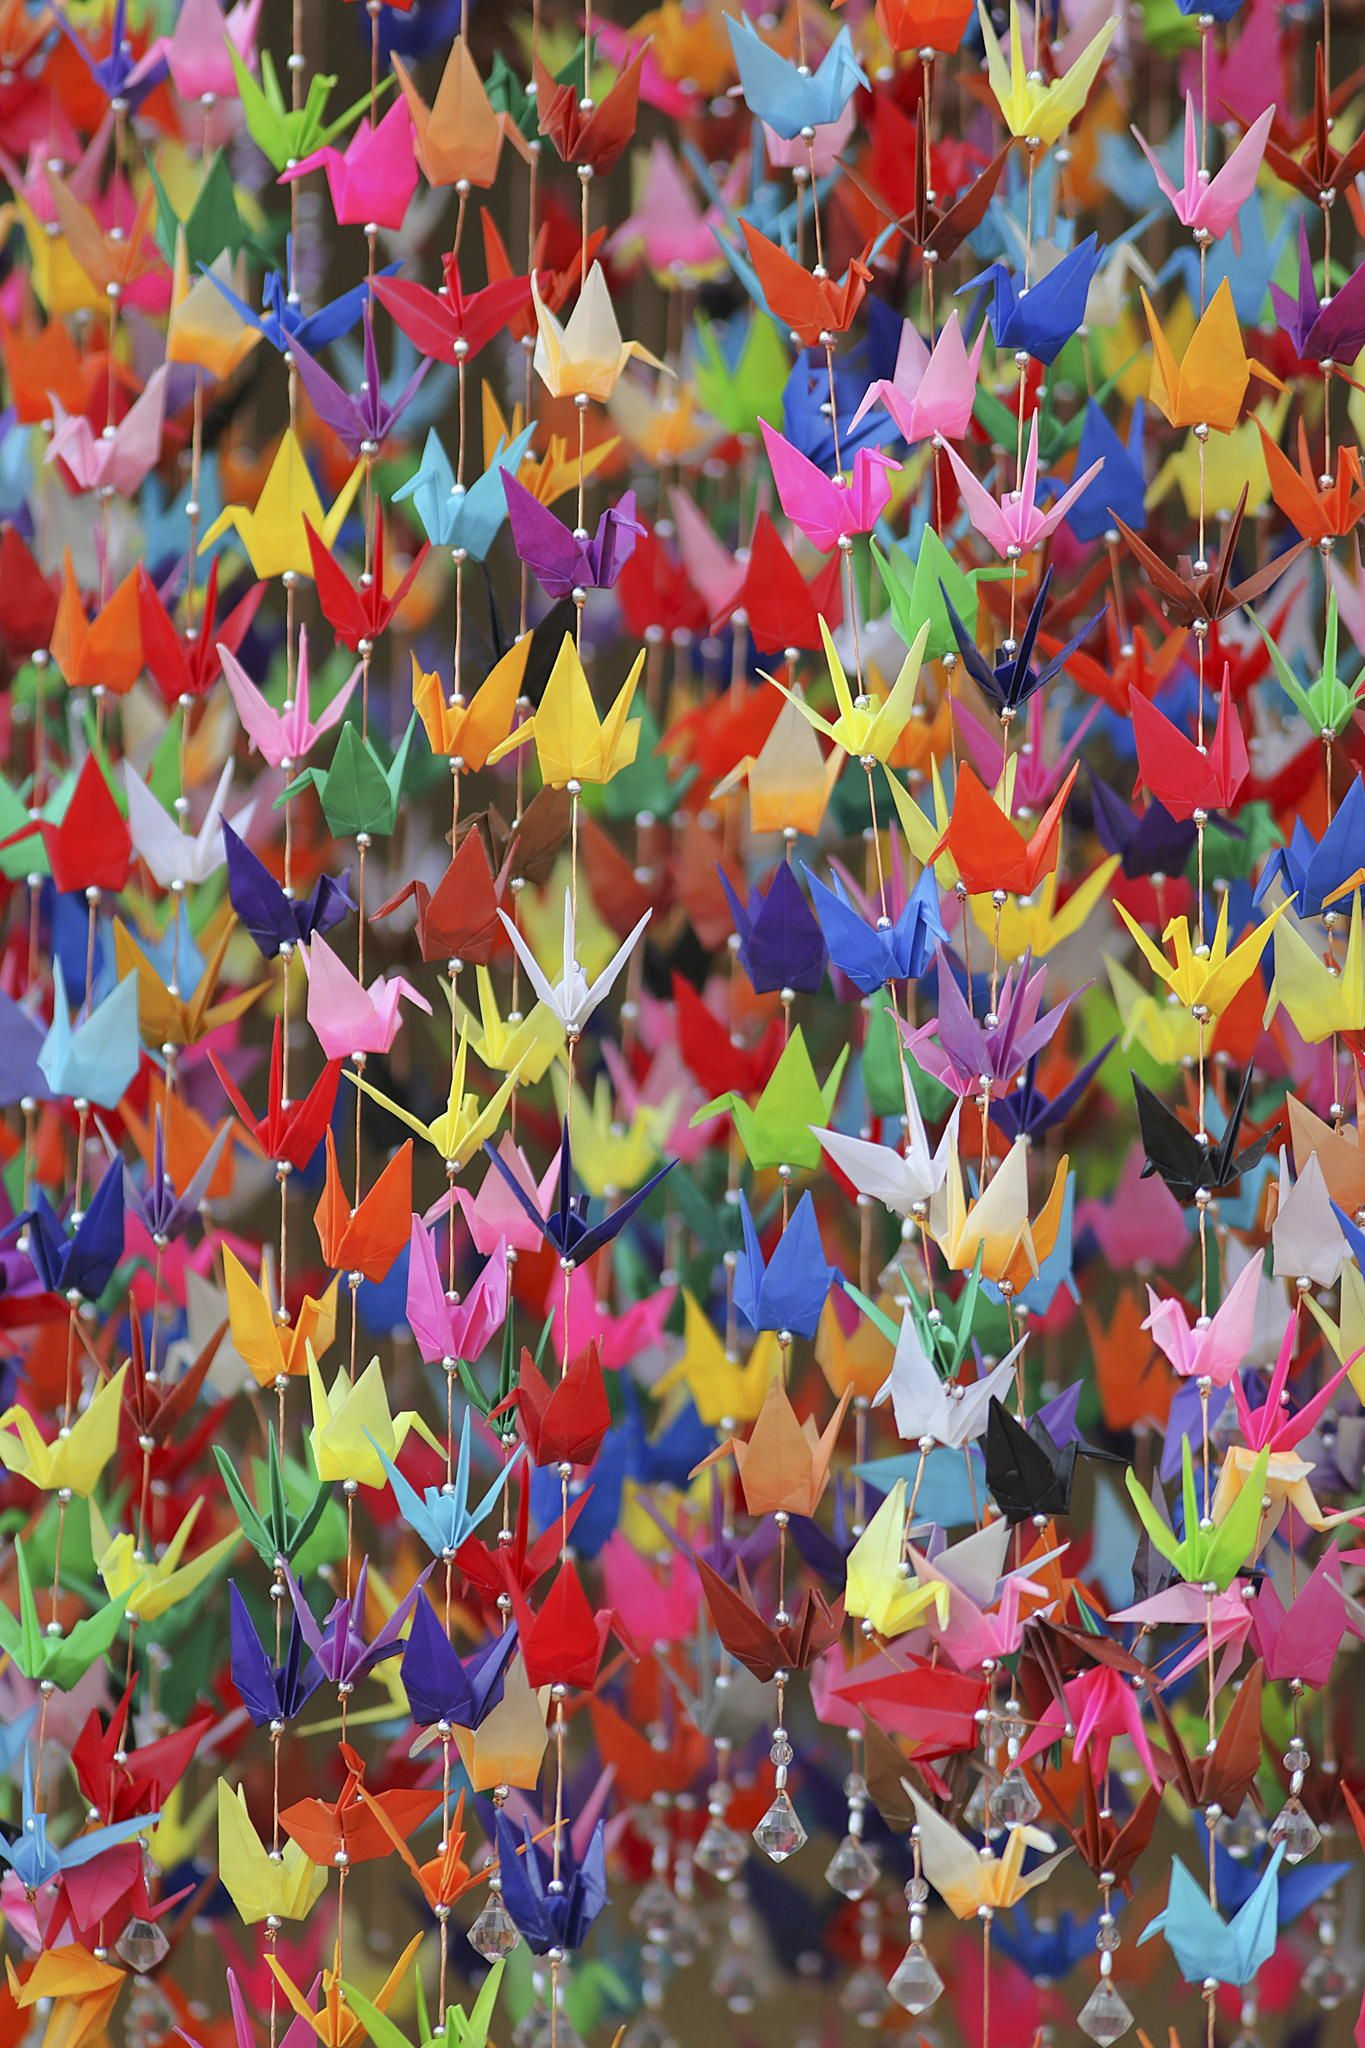 Origami paper cranes mobiles | Pretty Paper - Art, Collage ... - photo#47